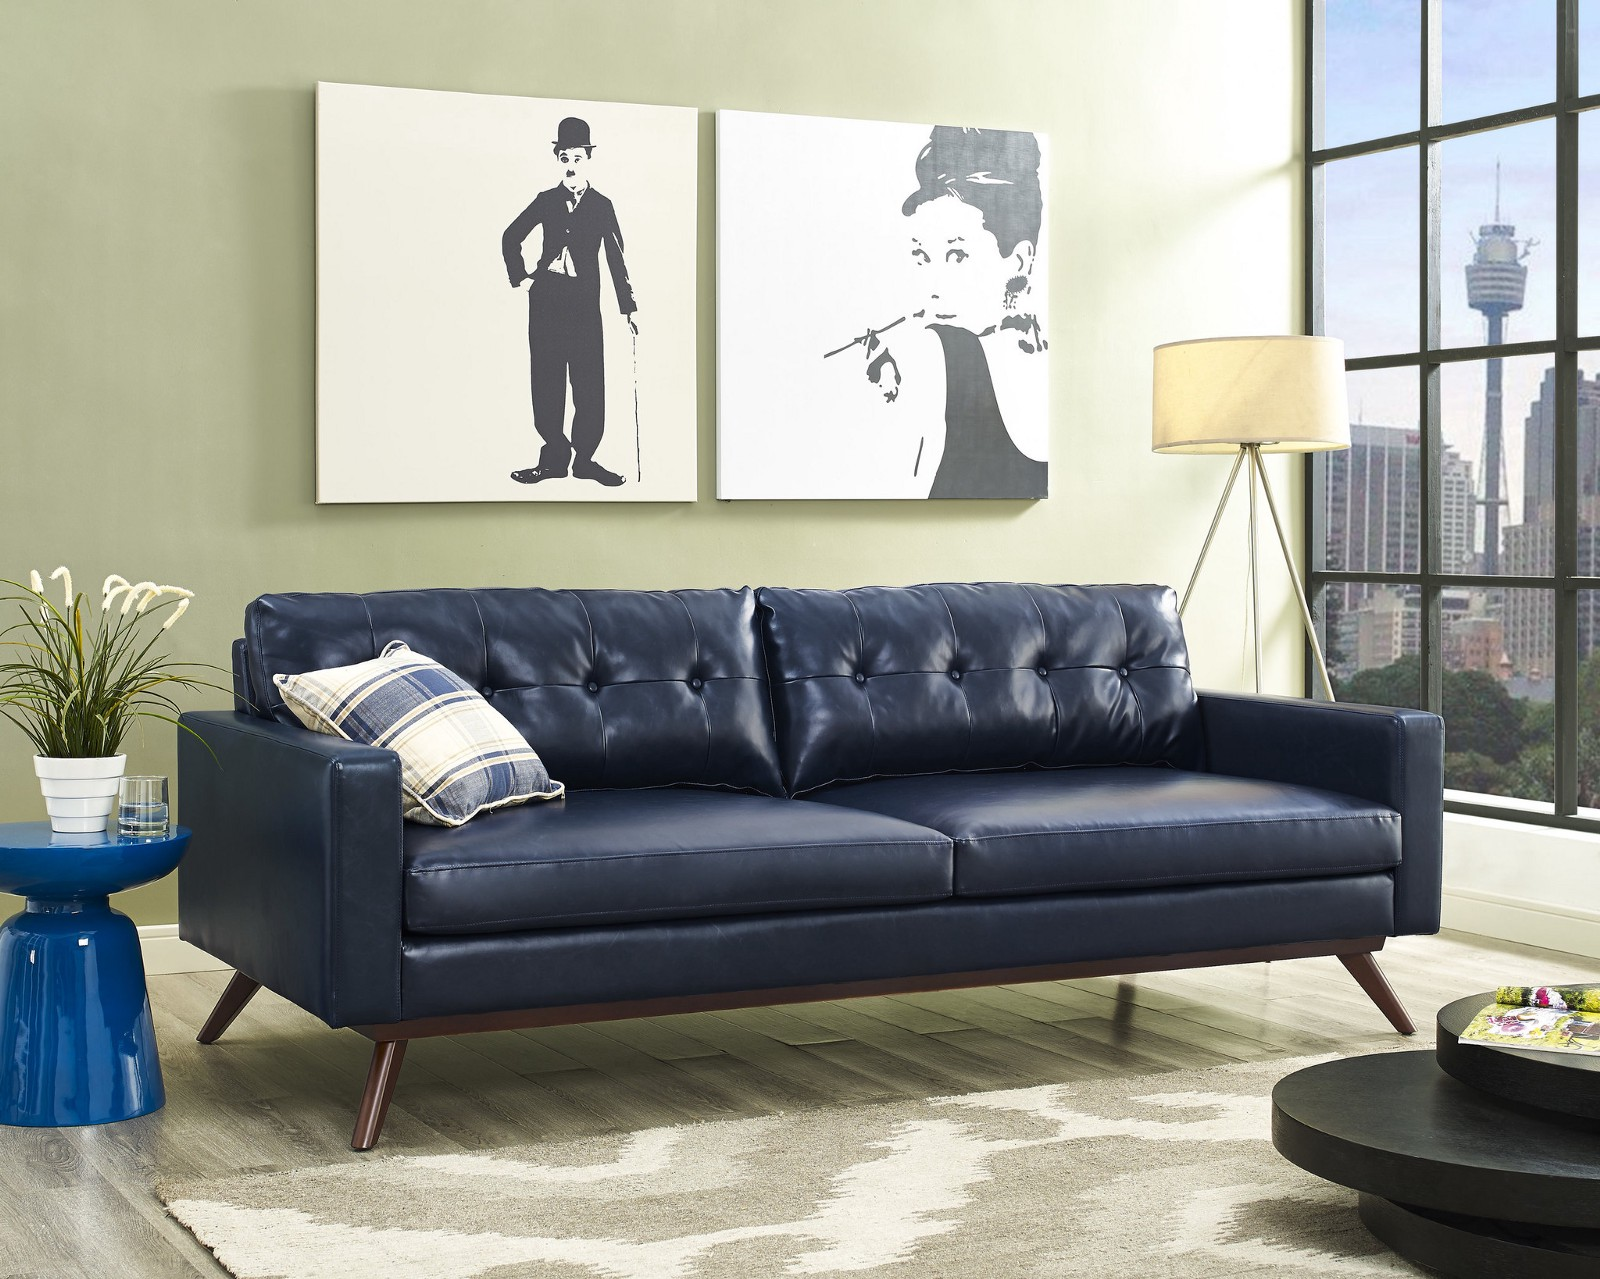 Give Your Home The Unique Modern Yet Classy Look With Awe Inspiring Mid  Century Furnishings